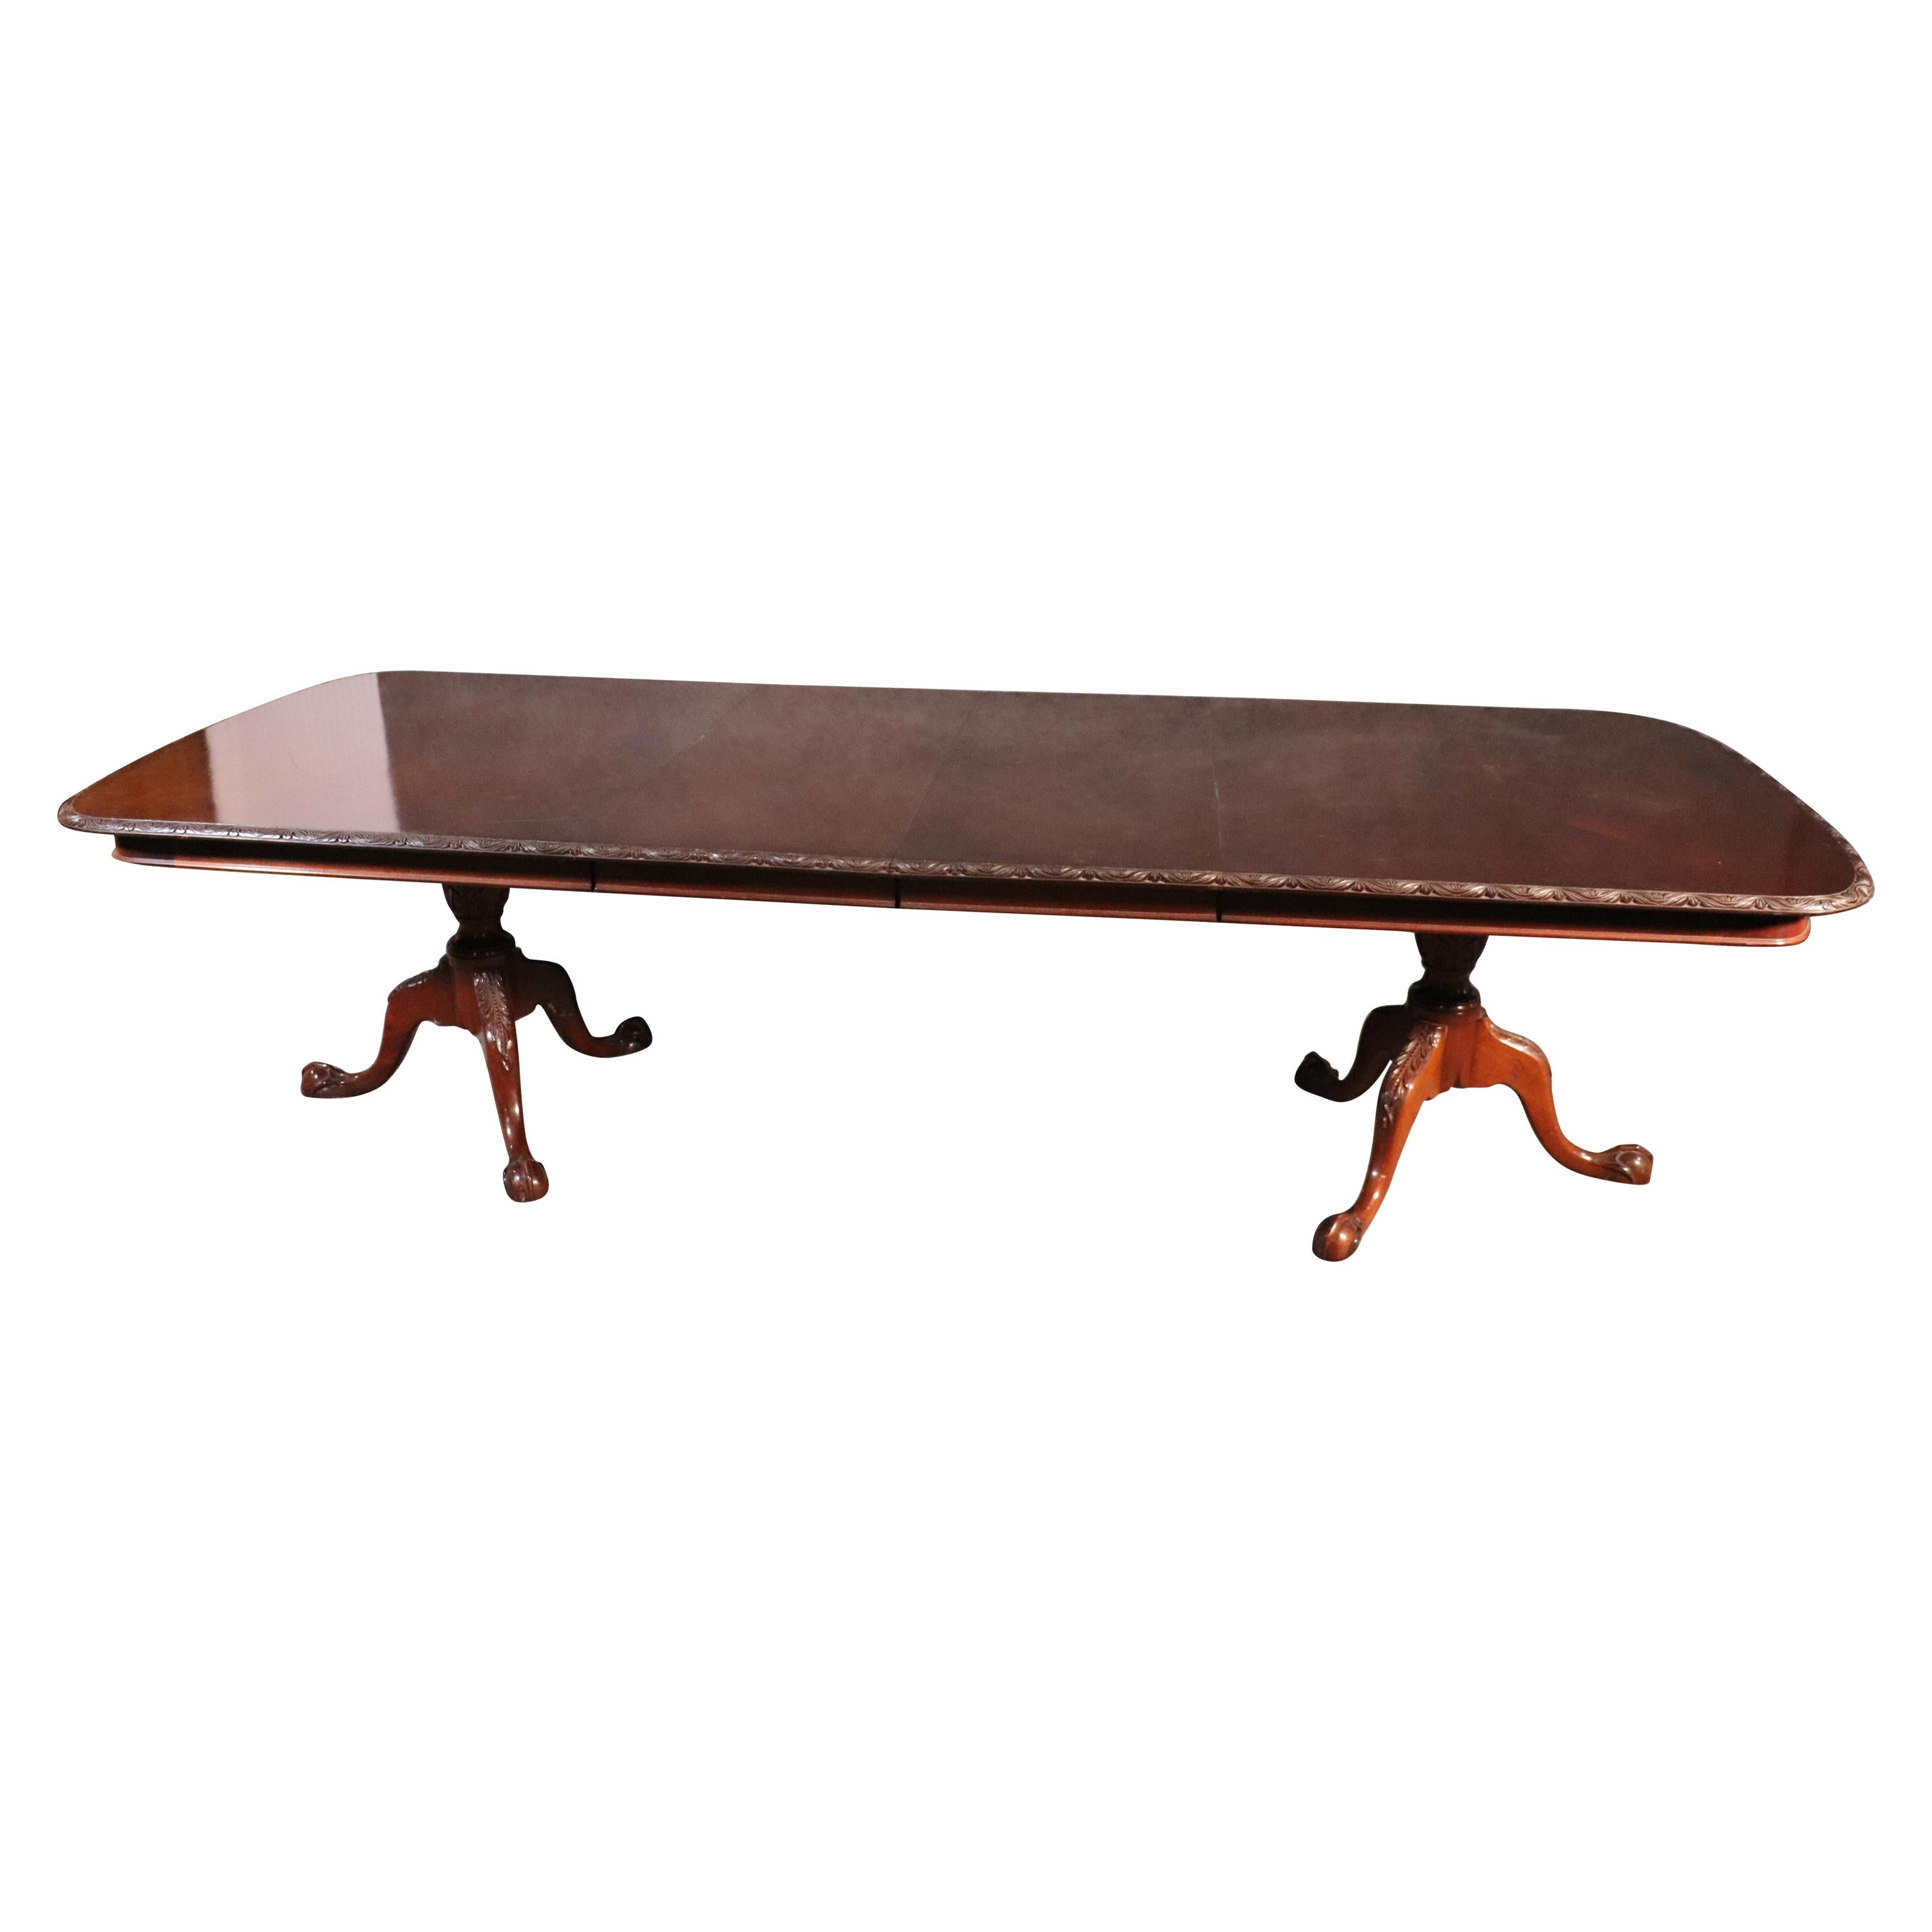 Solid Mahogany Georgian Chippendale Carved Dining Table with Two leaves